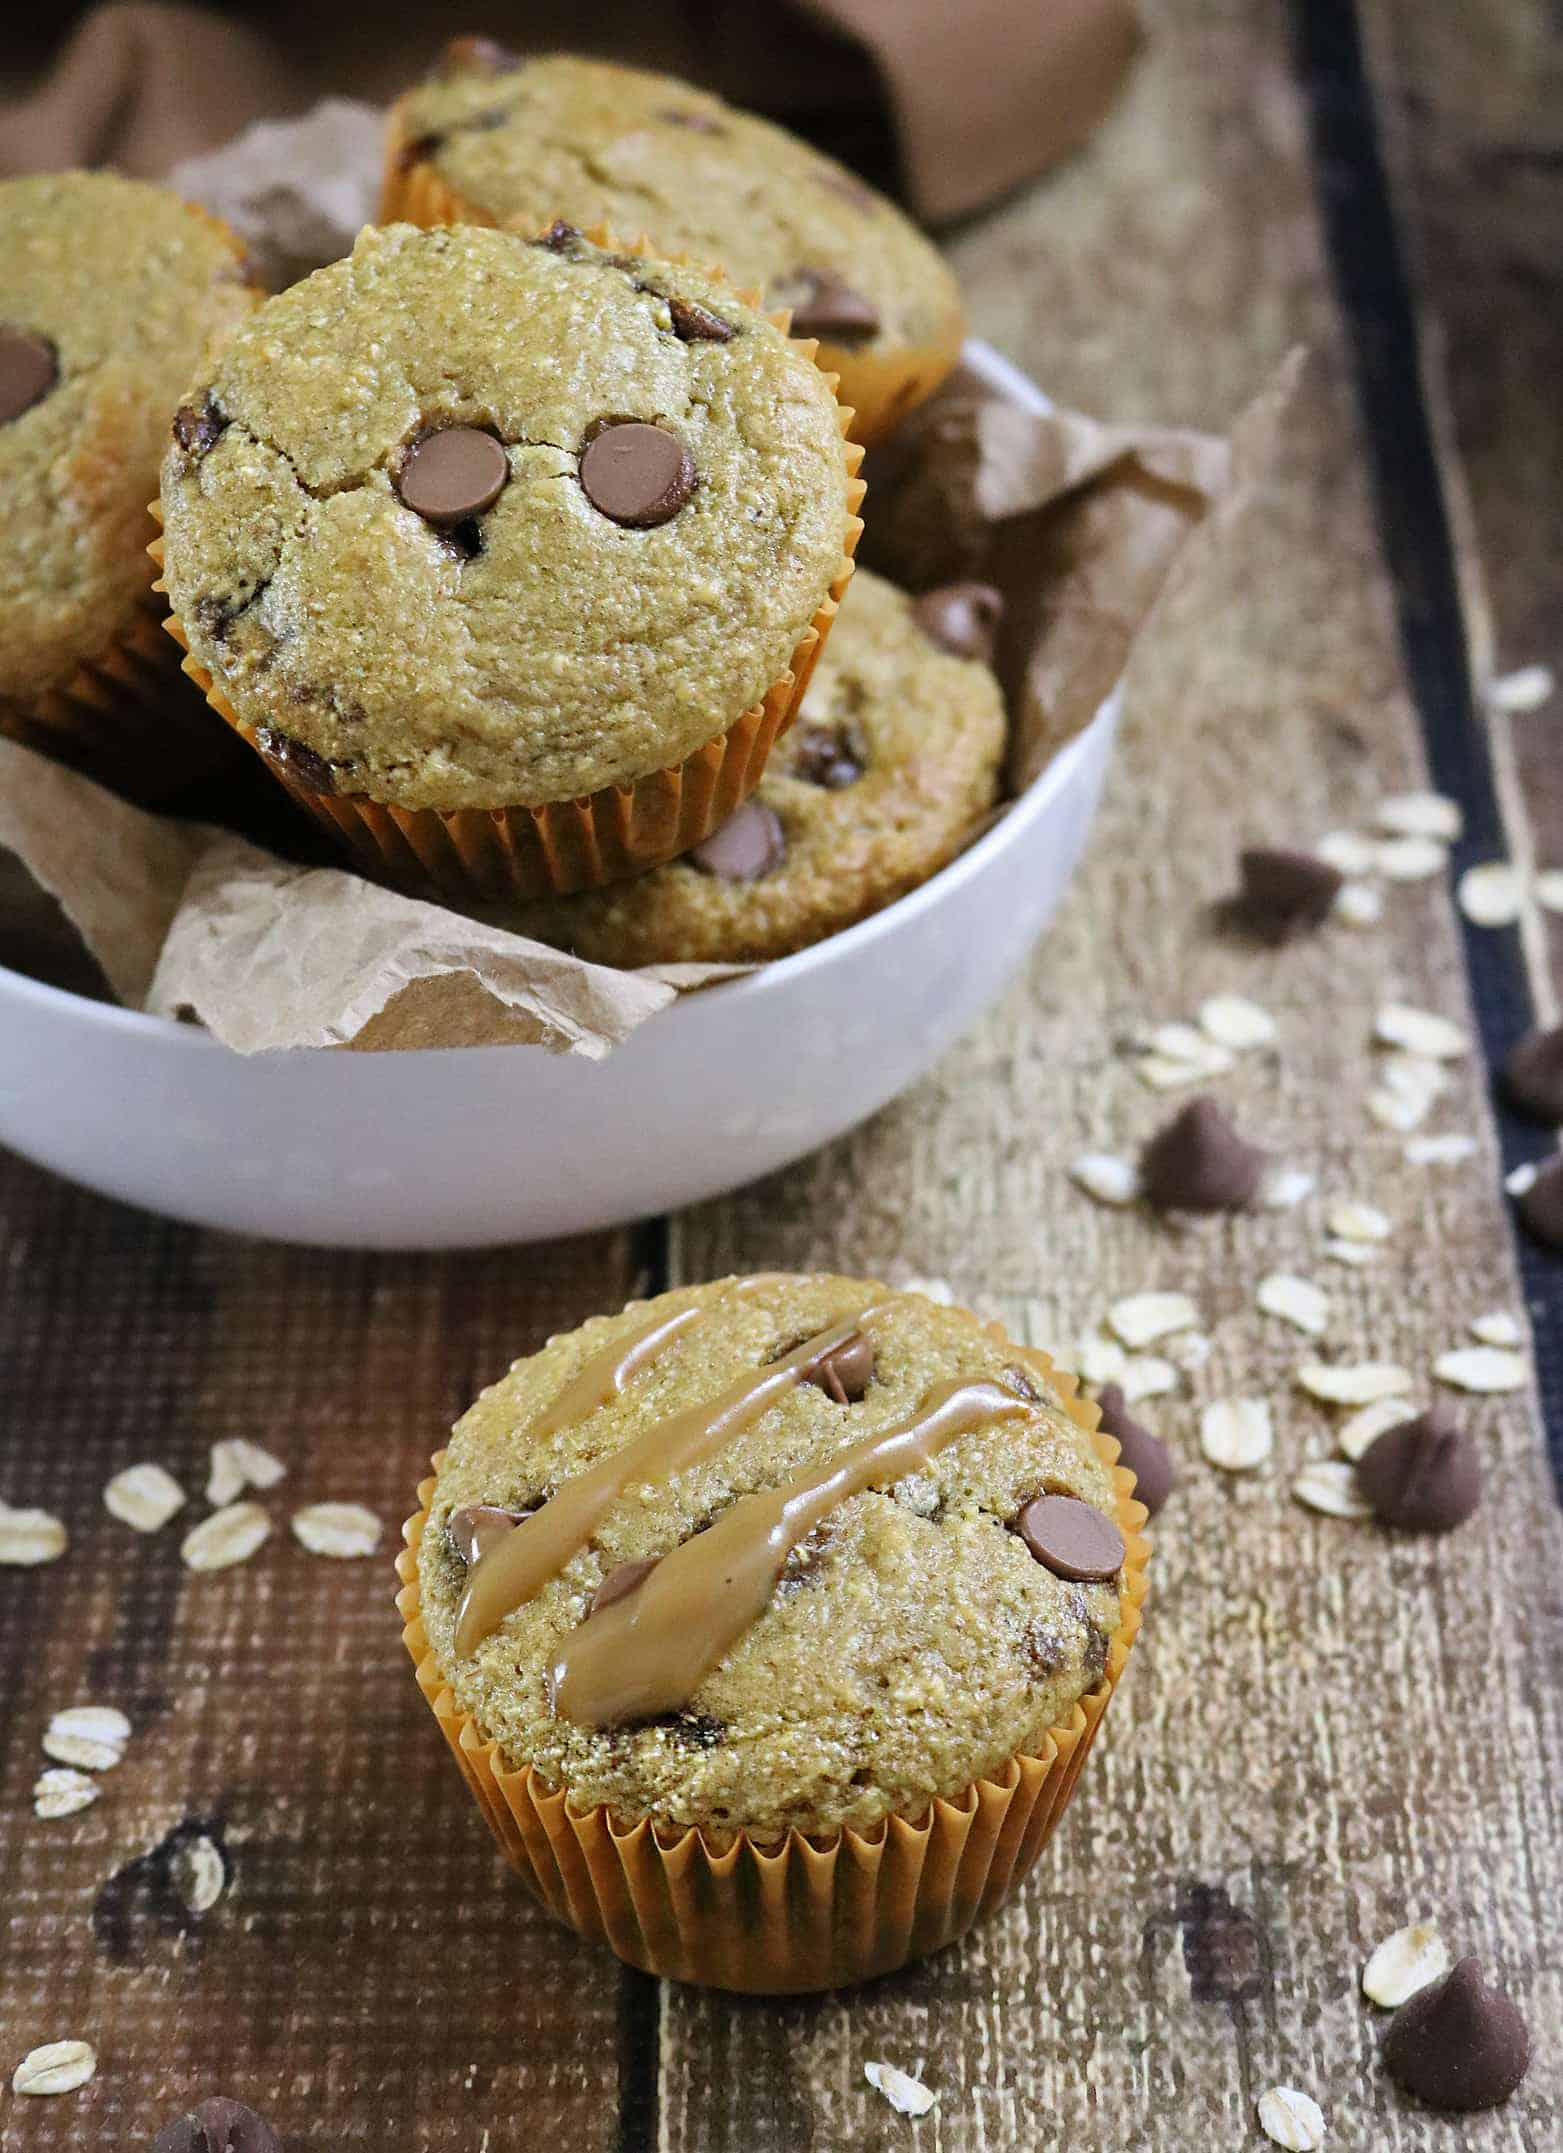 Gluten free Caramel Chocolate Muffins And Iced Caramel Mocha